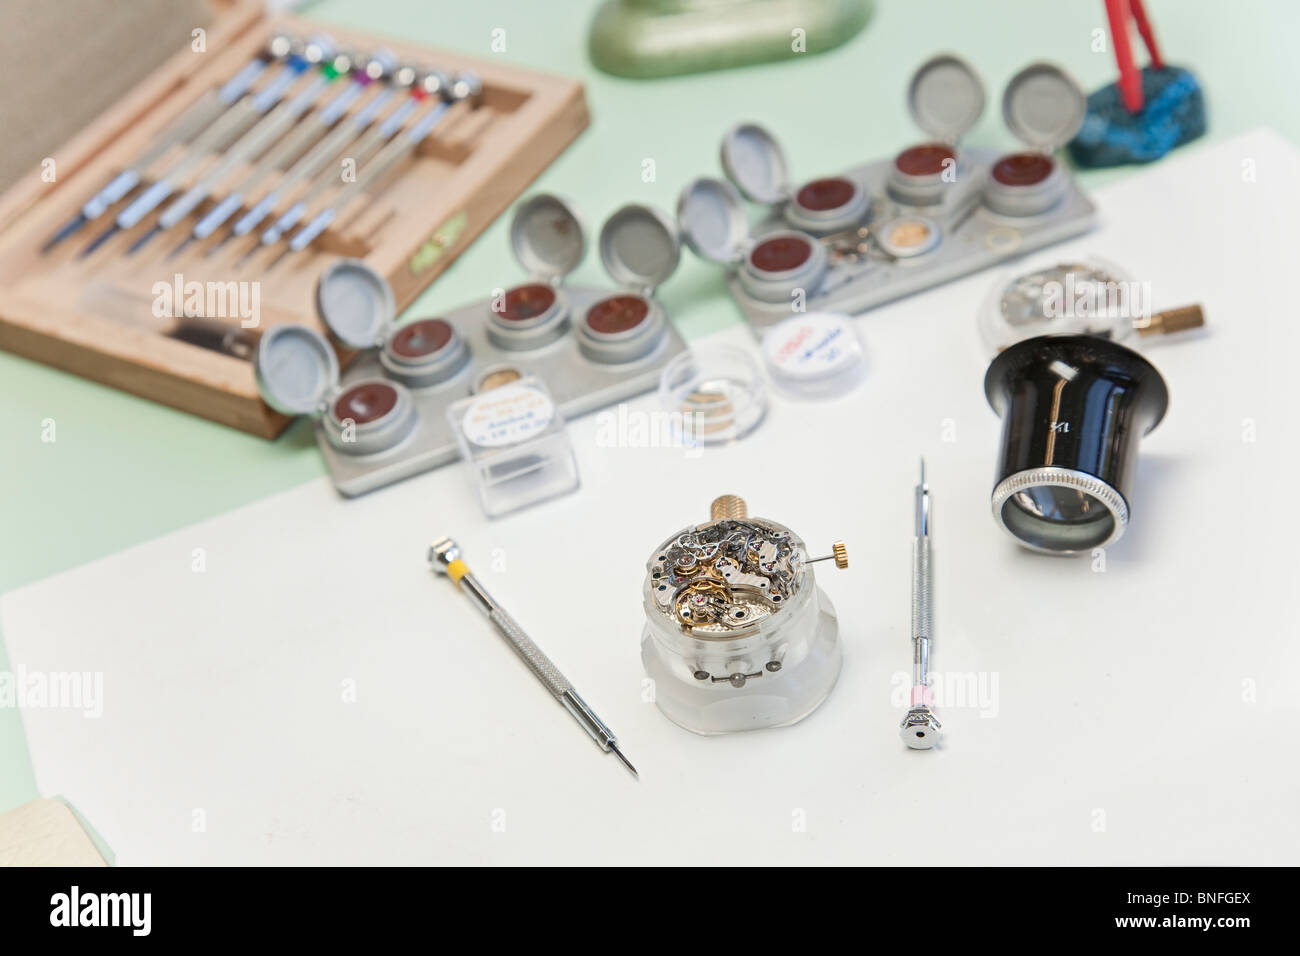 Lange und Soehne GmbH: manufacture for precious watches in Glashuette, Germany Stock Photo